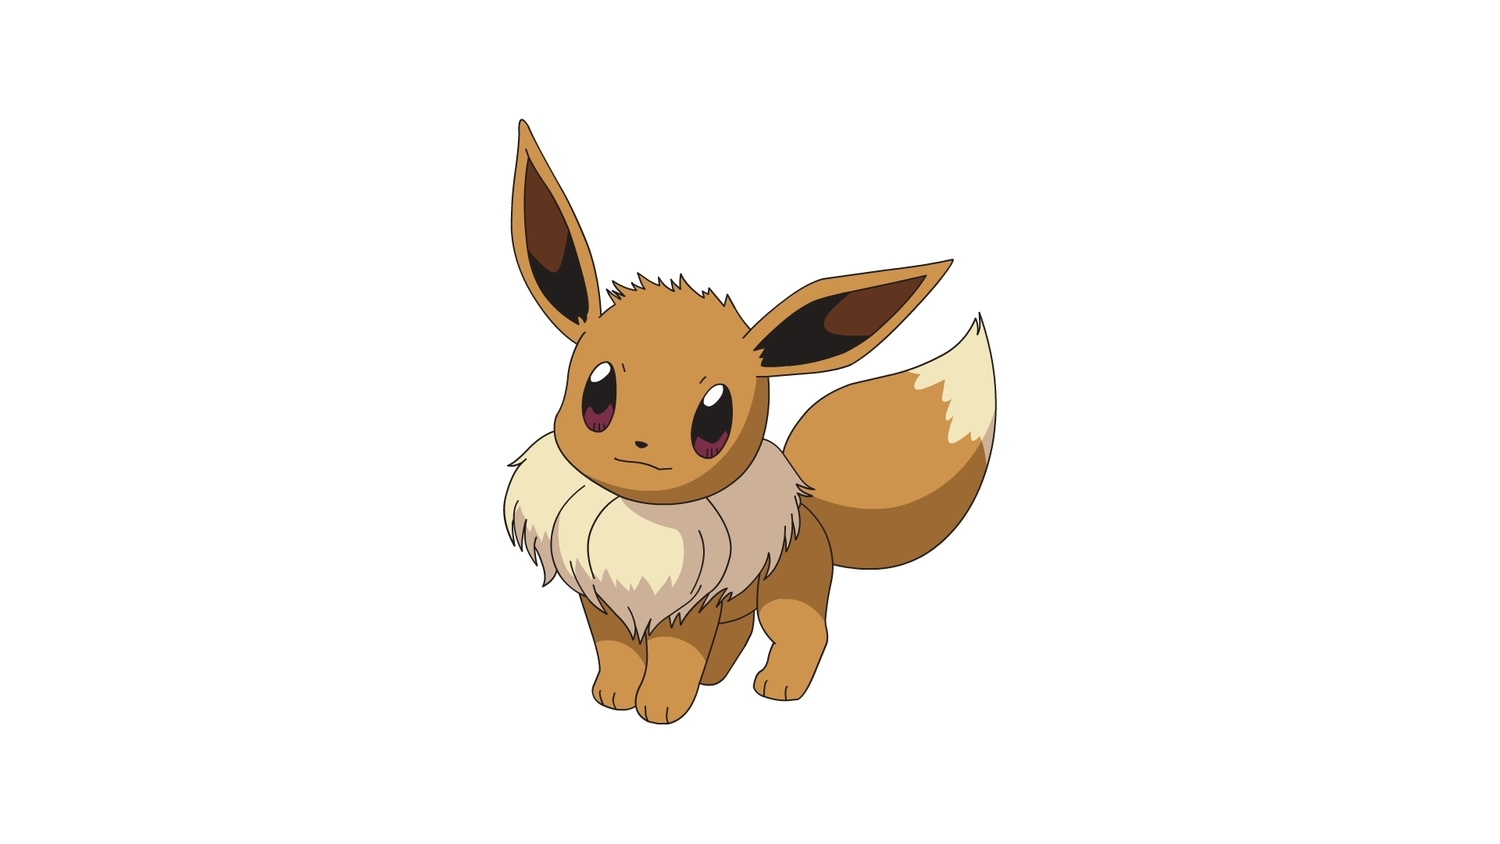 Its Safe To Say Eevee Has Been One Of The Most Sought After Pokemon Since Launch Go This Is Due Fact That 3 Different